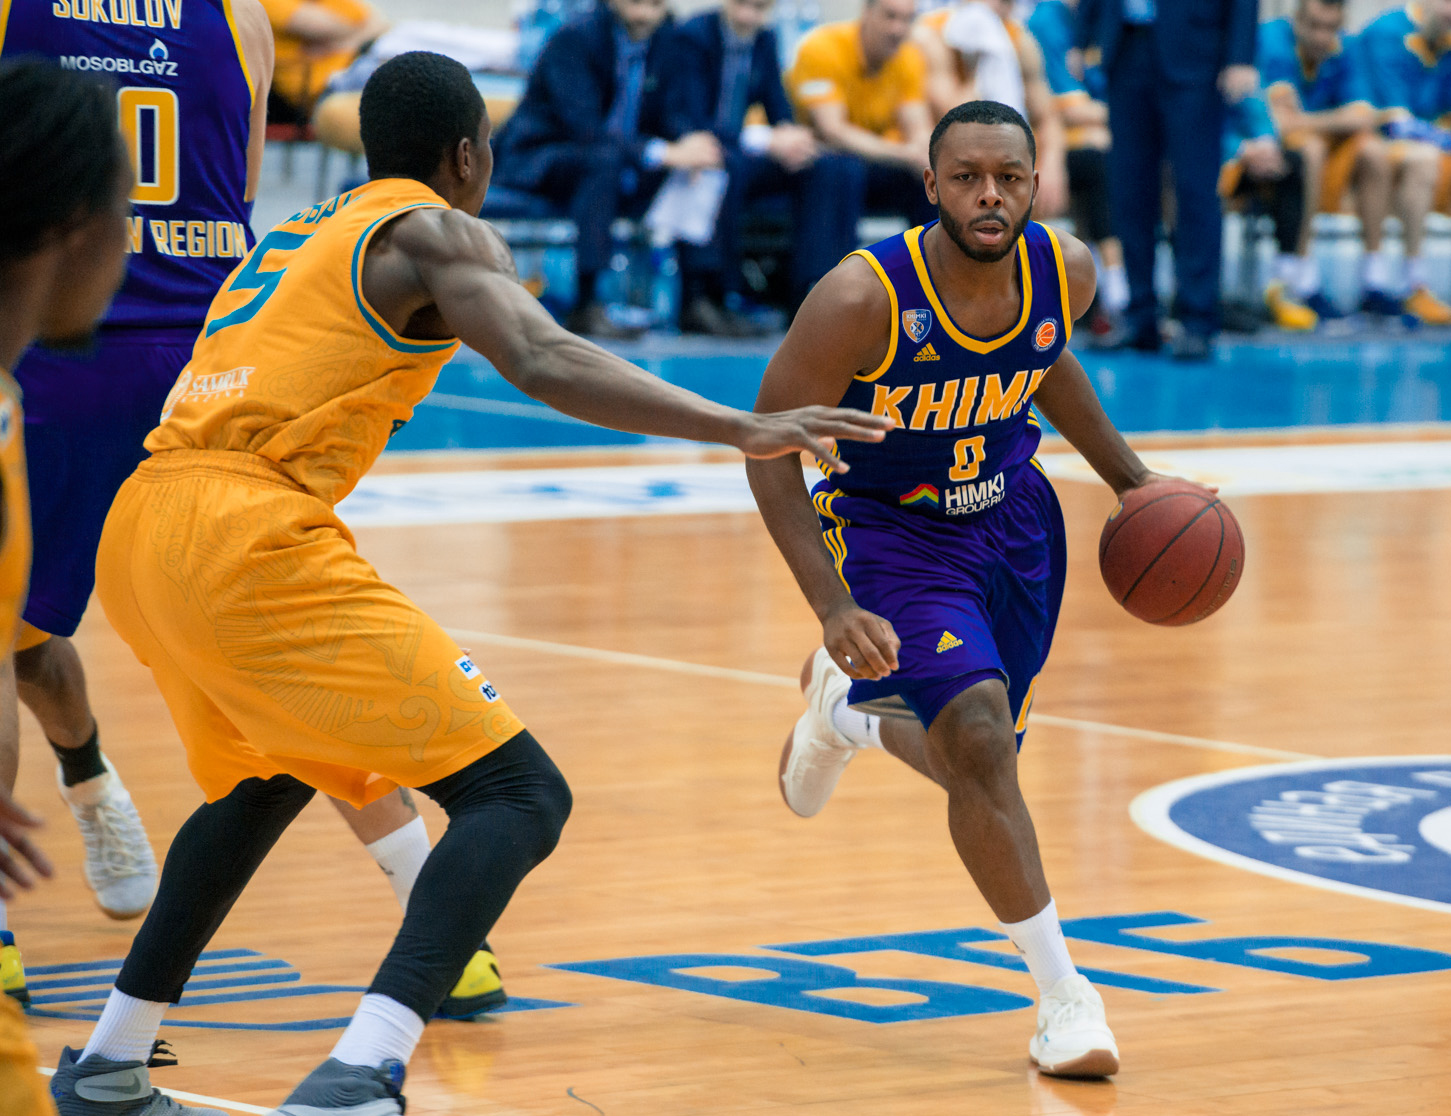 Khimki Survives Astana, Krubally